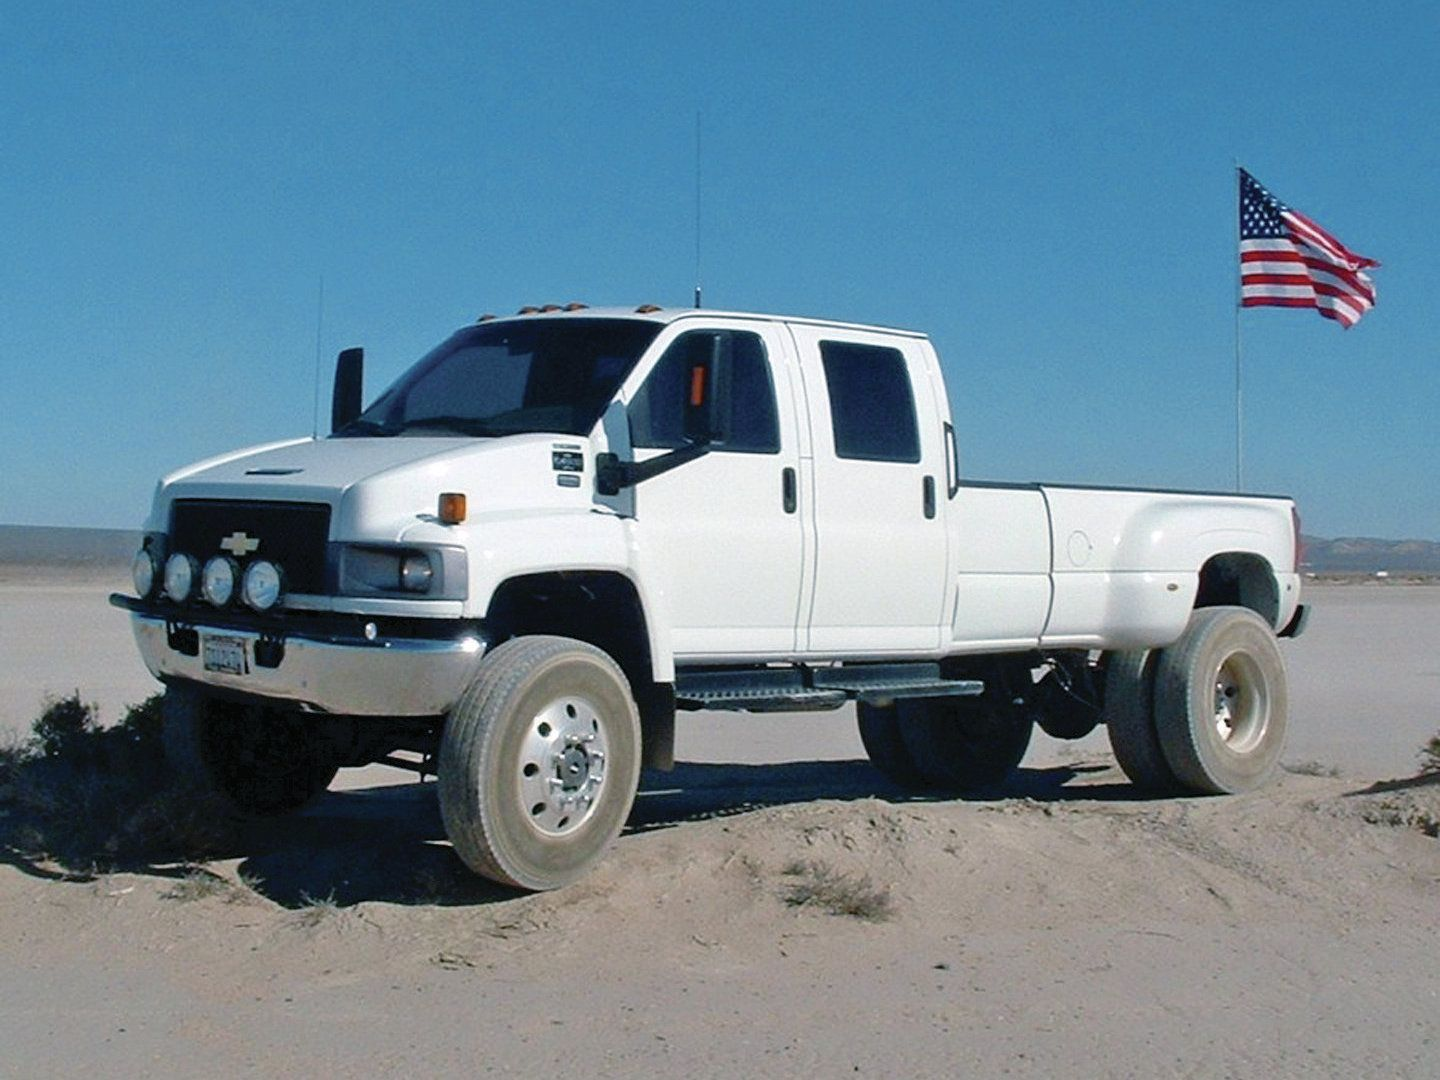 All Chevy chevy c5500 specs : 2005 Chevrolet Kodiak - Chevrolet Kodiak Wikipedia the free ...